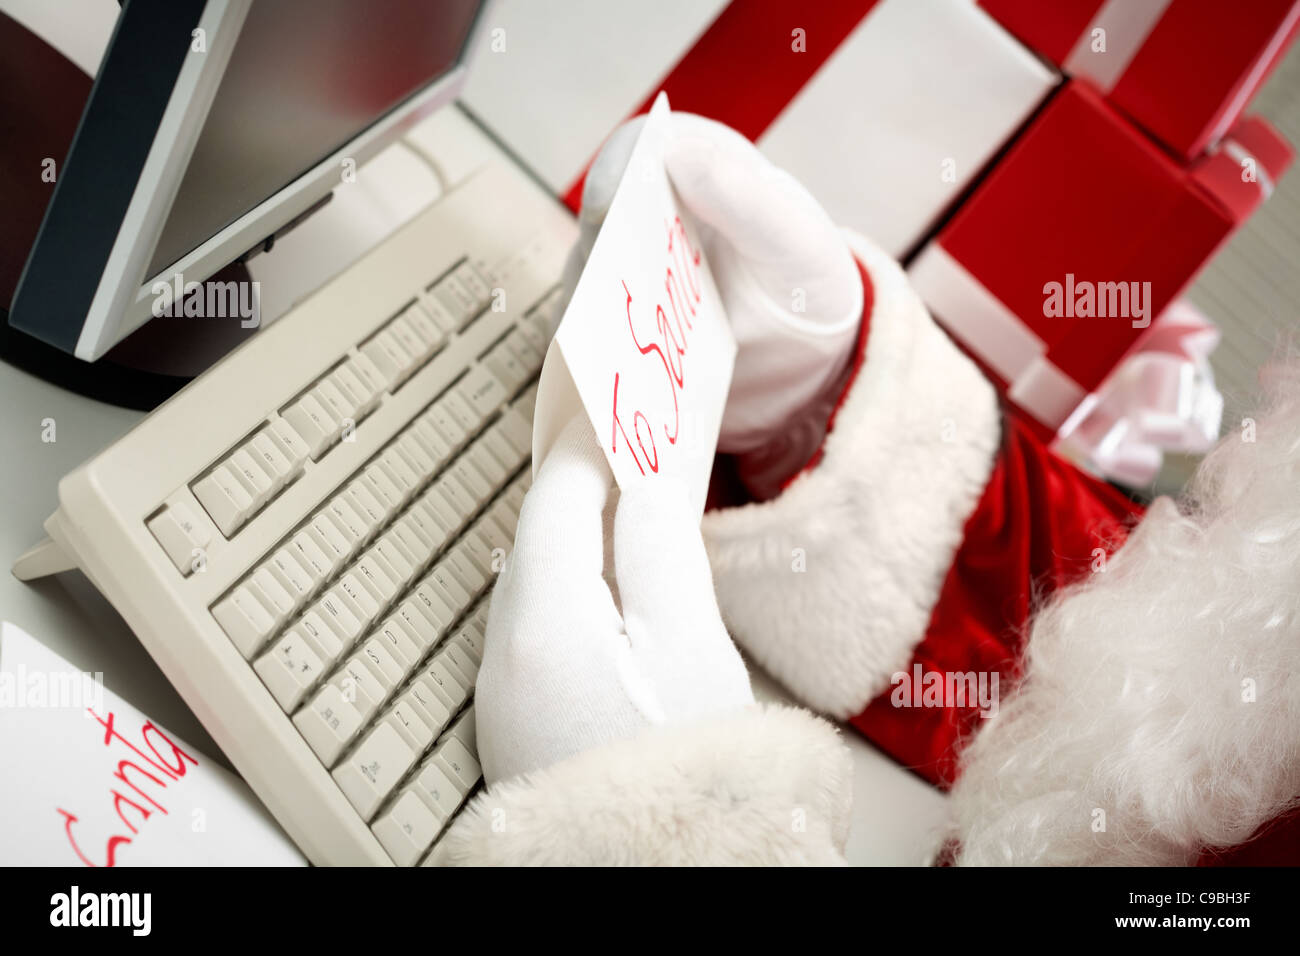 Close-up of Santa gloved hands holding letter with note 'To Santa' - Stock Image